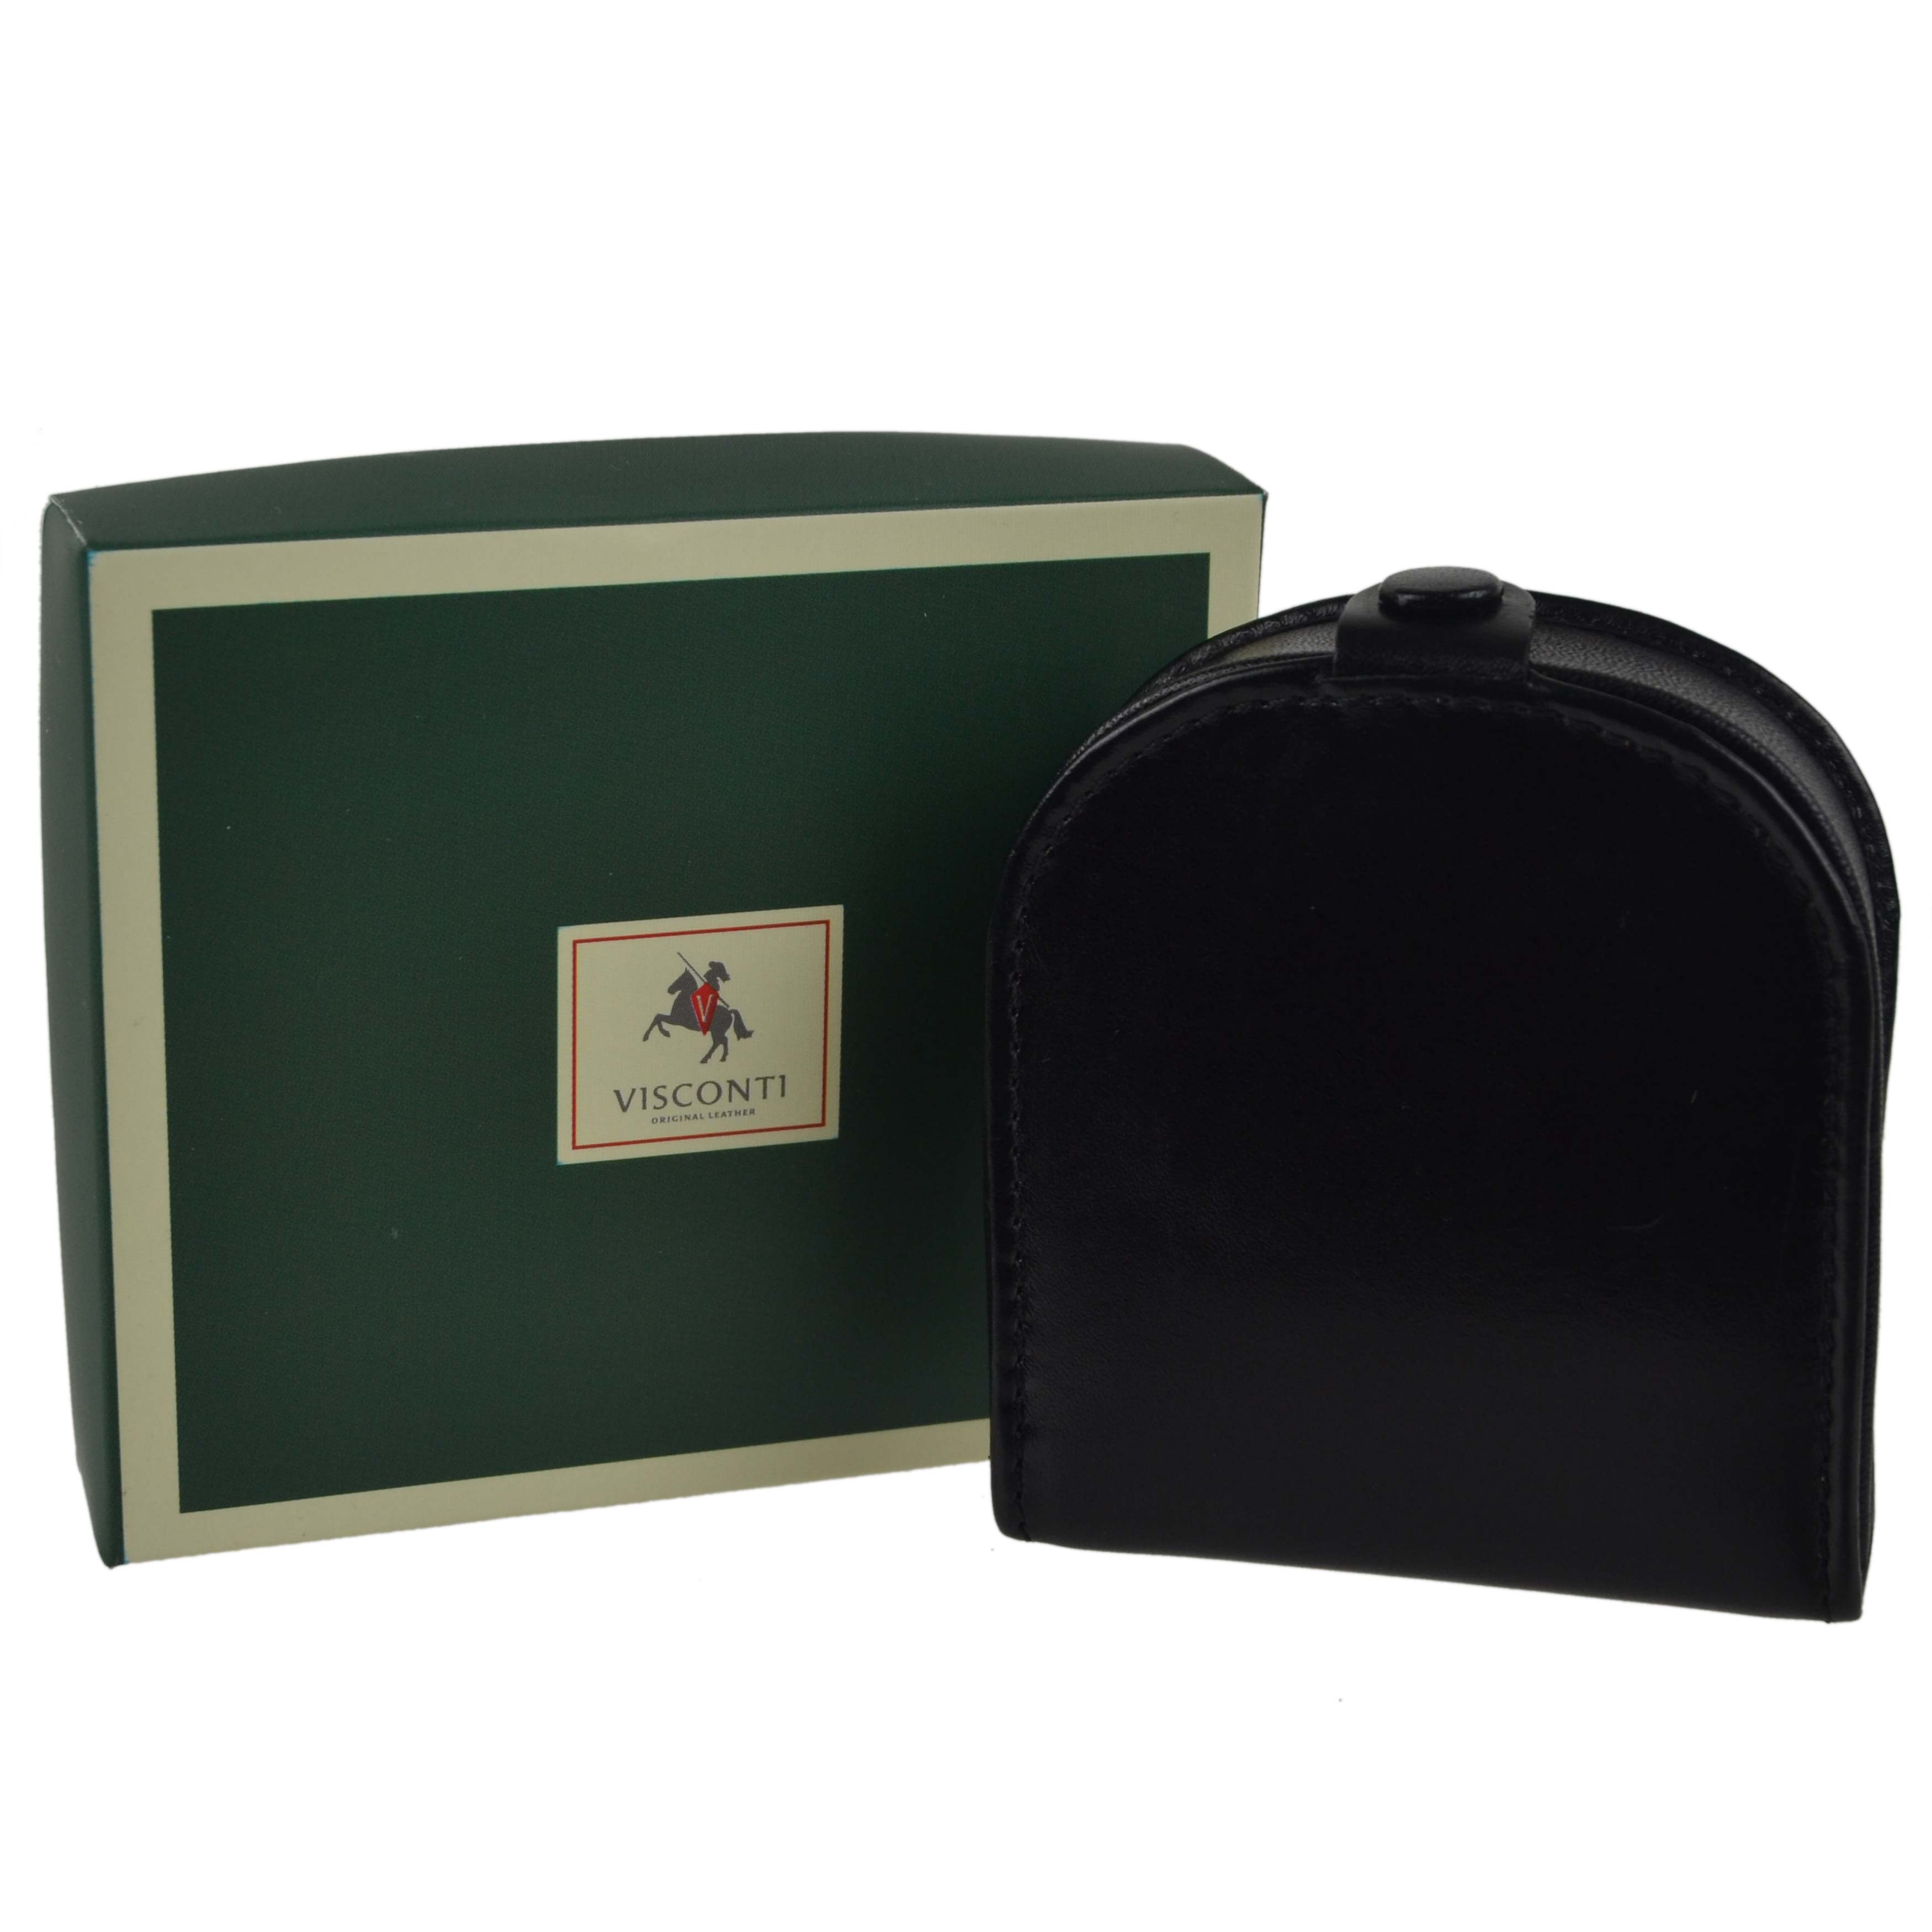 thumbnail 8 - Mens-Classic-Leather-Tabbed-Coin-Tray-by-Visconti-Monza-Collection-Gift-Boxed